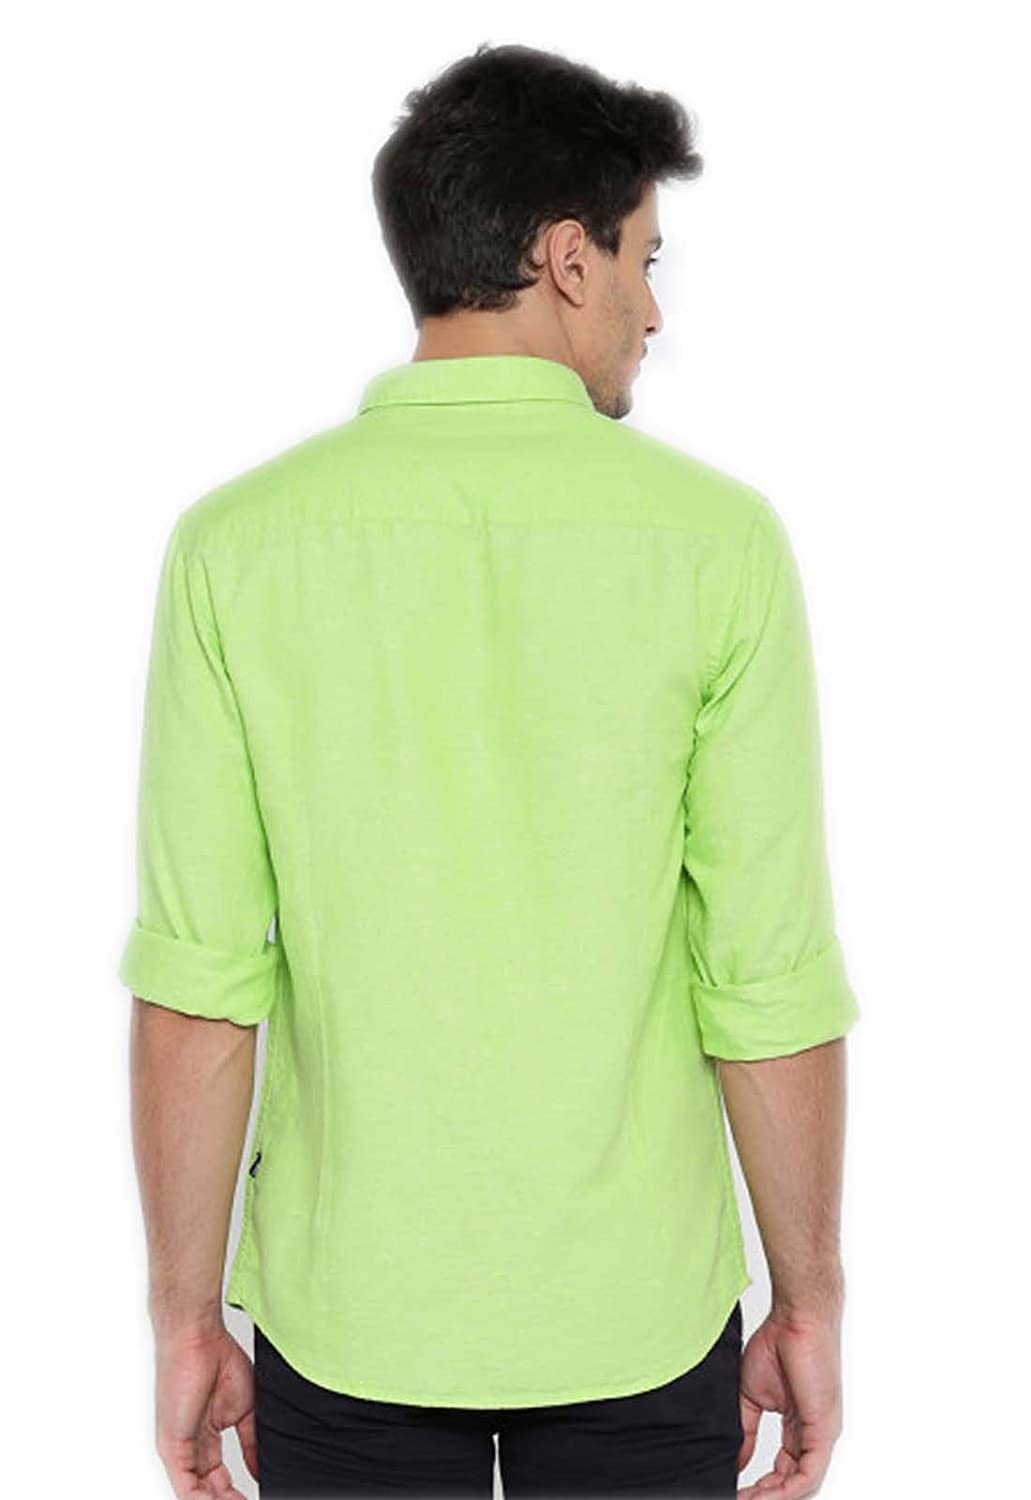 6b495f3b2ca5 SSB Men's Cotton Solid Light Green Casual Shirts XL: Amazon.in: Clothing &  Accessories